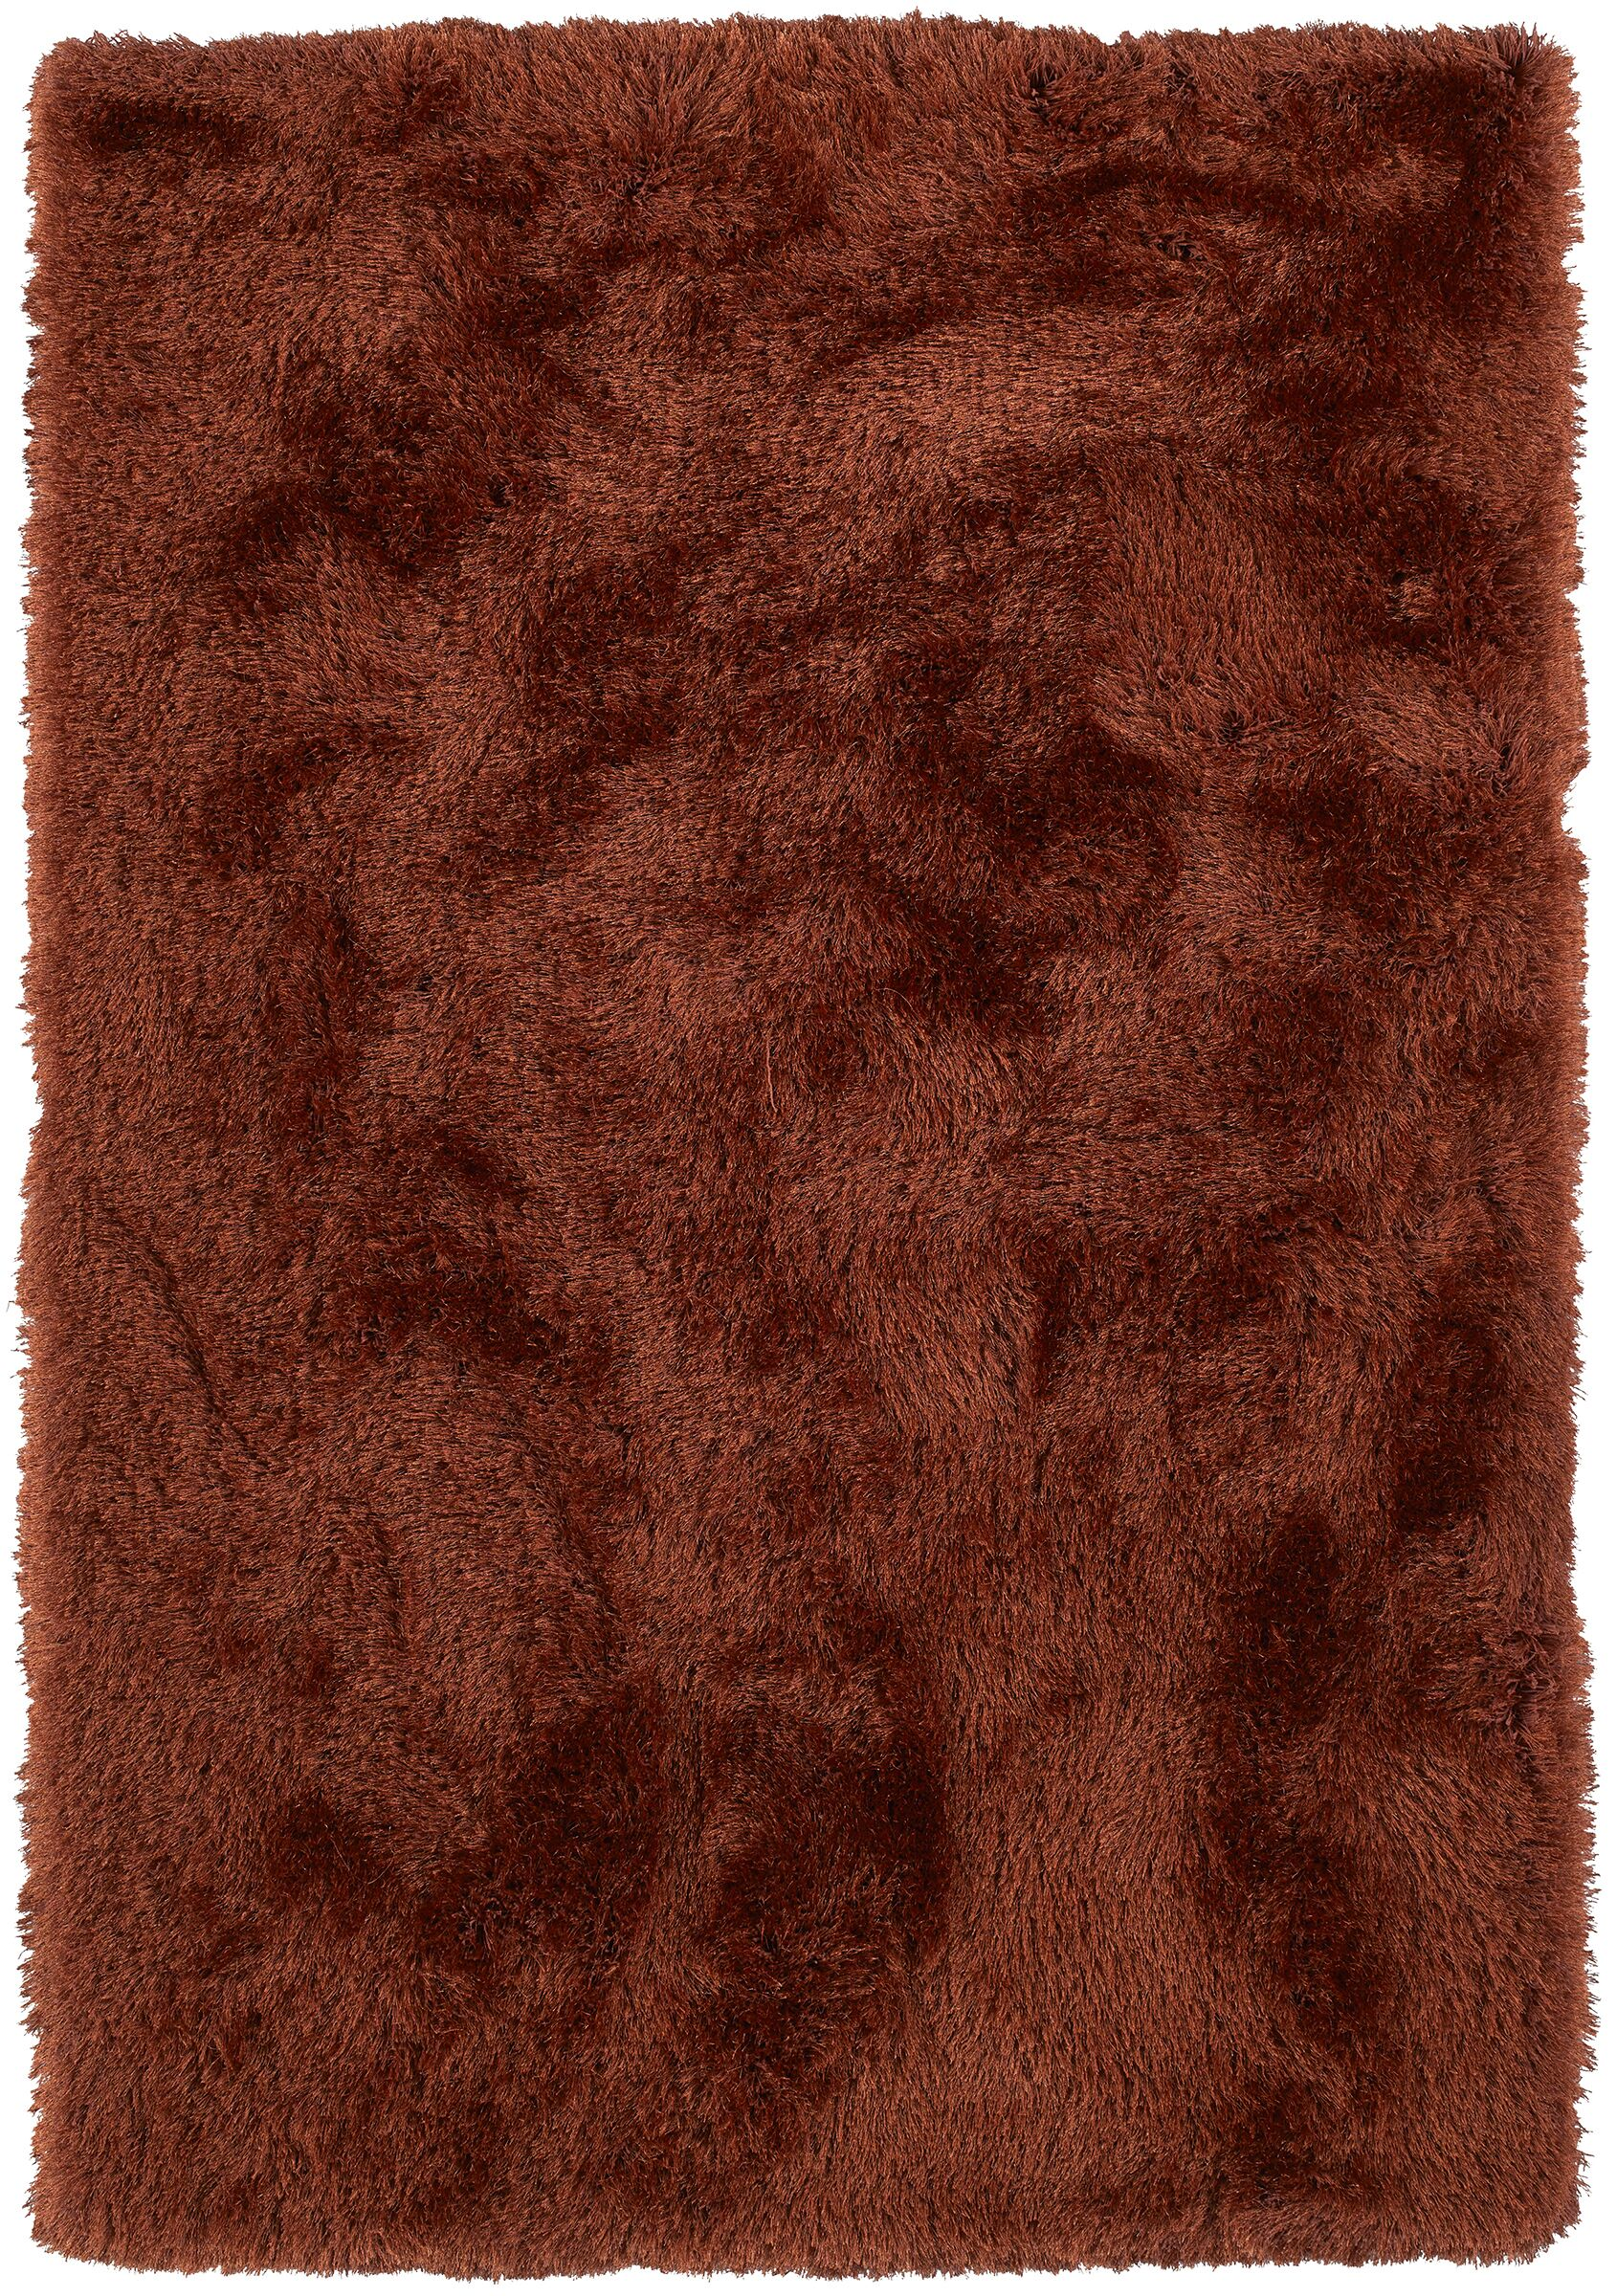 Impact Hand-Tufted Brown Area Rug Rug Size: Rectangle 9' x 13'